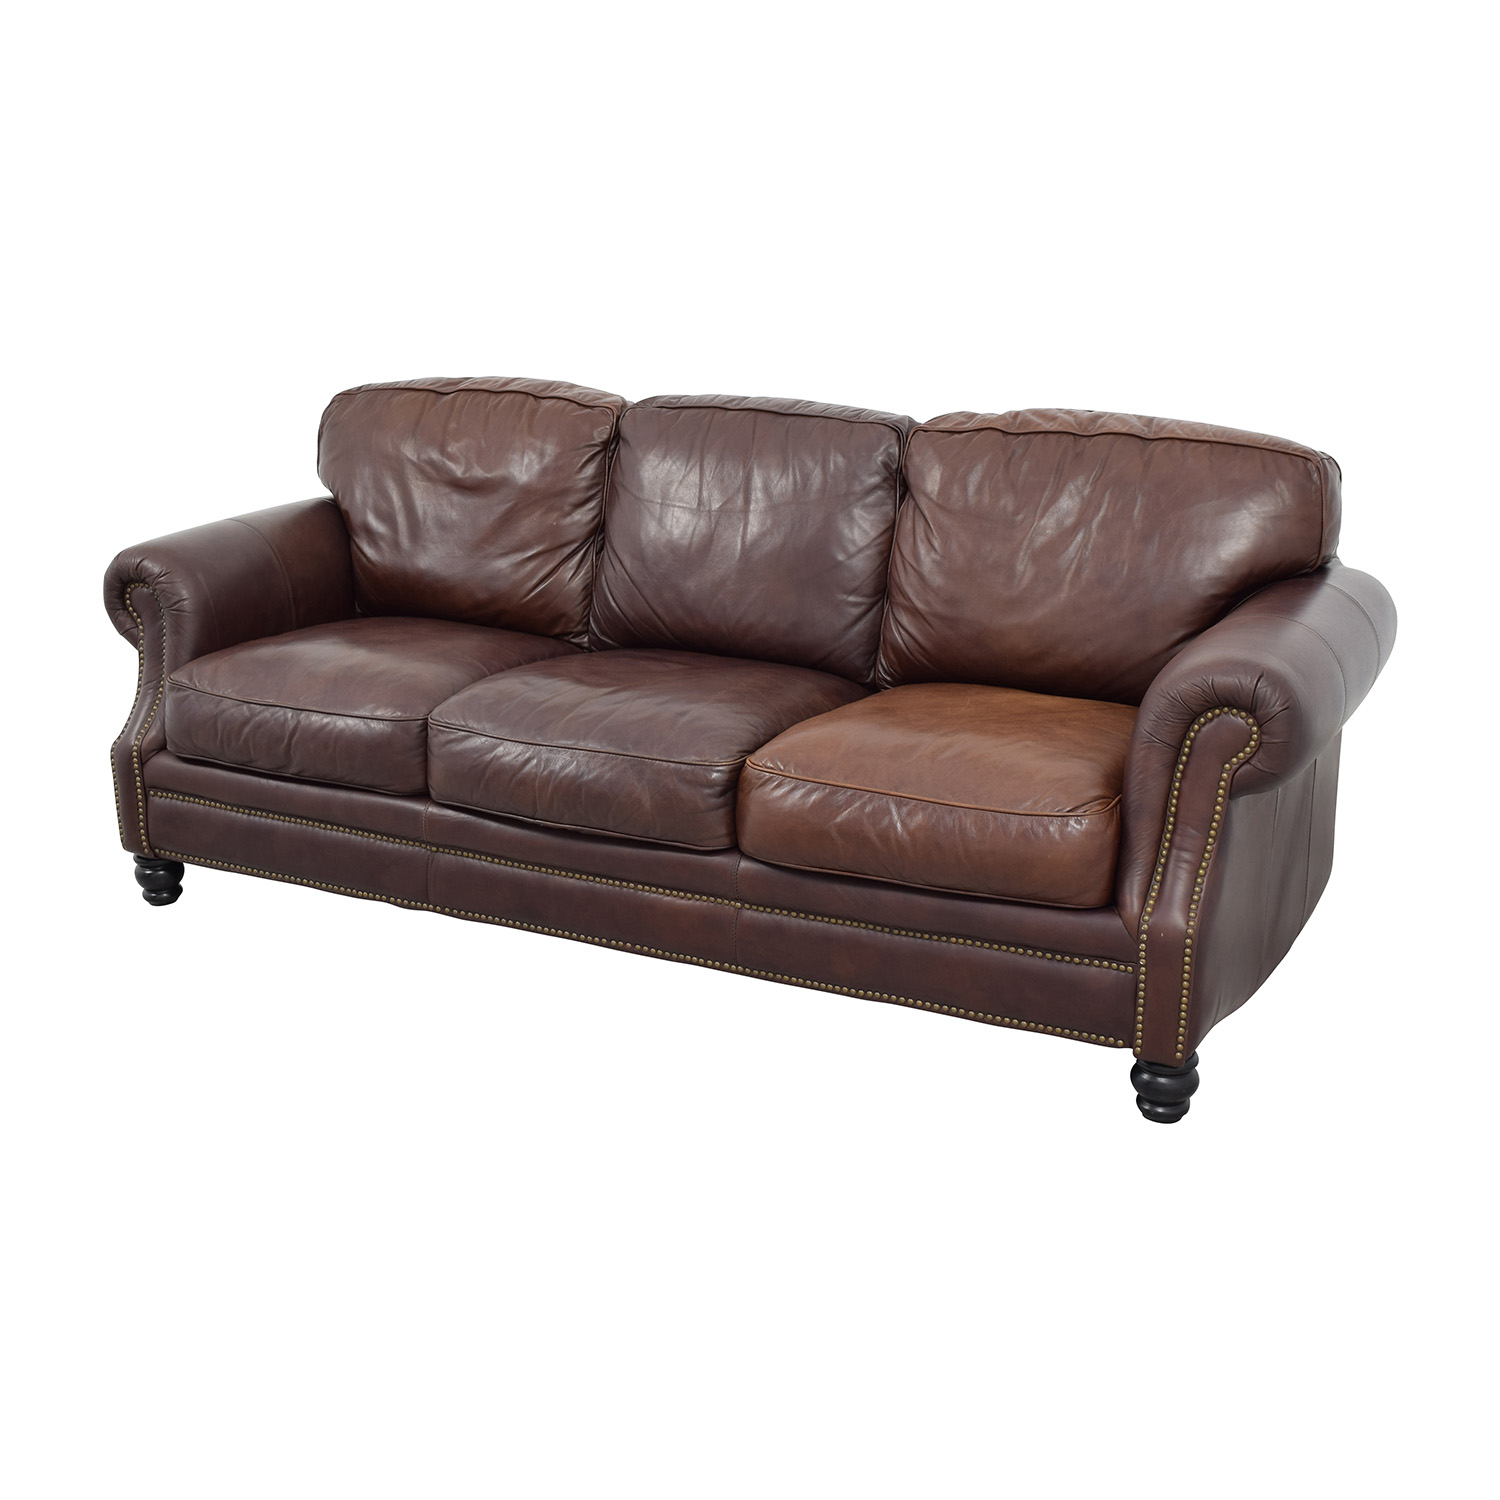 61 off brown leather studded three cushion sofa sofas for Studded leather sofa